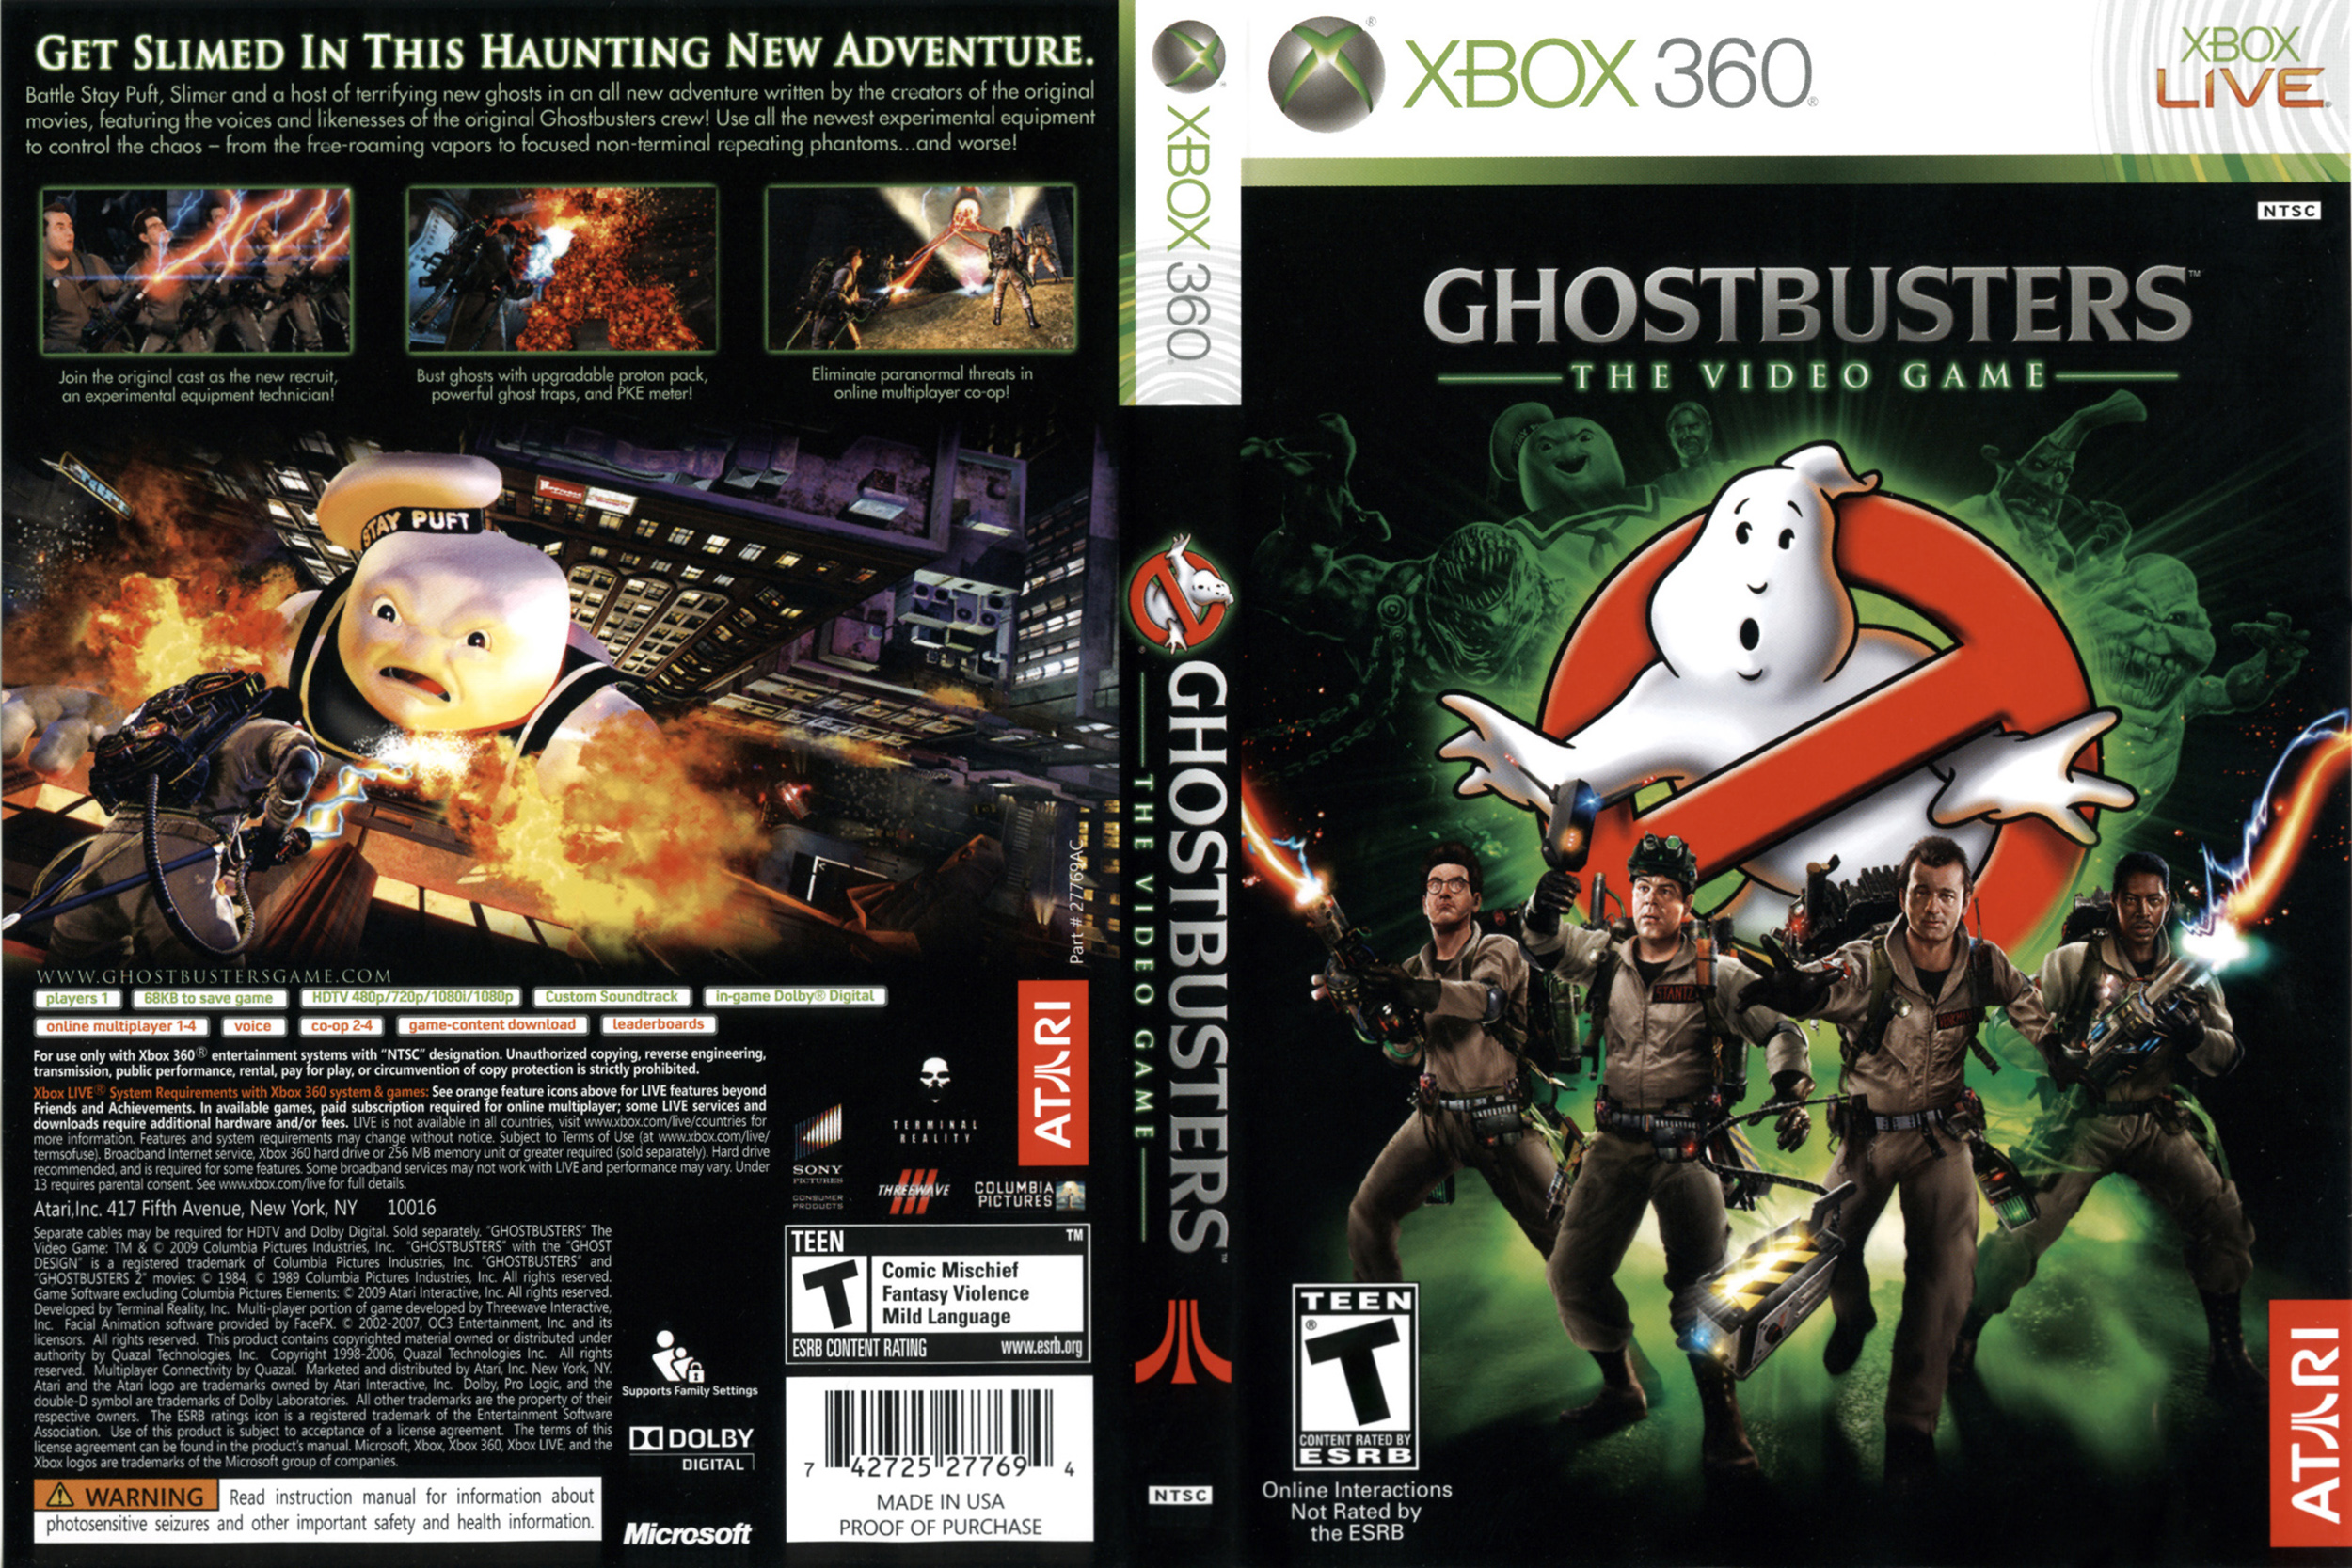 GhostbustersTheVideoGame